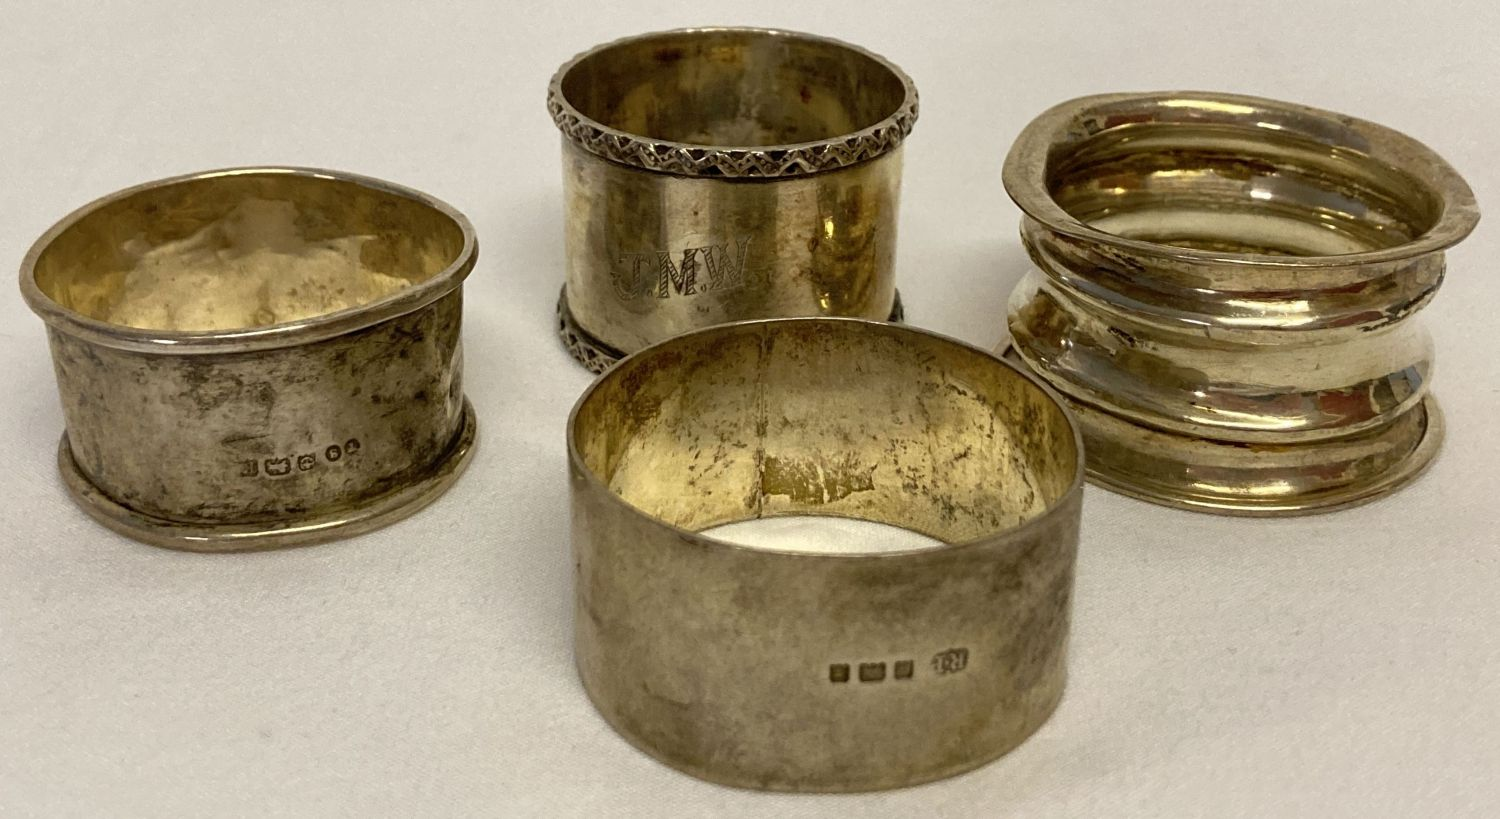 4 vintage hallmarked silver napkin rings, 2 with engraved monograms.